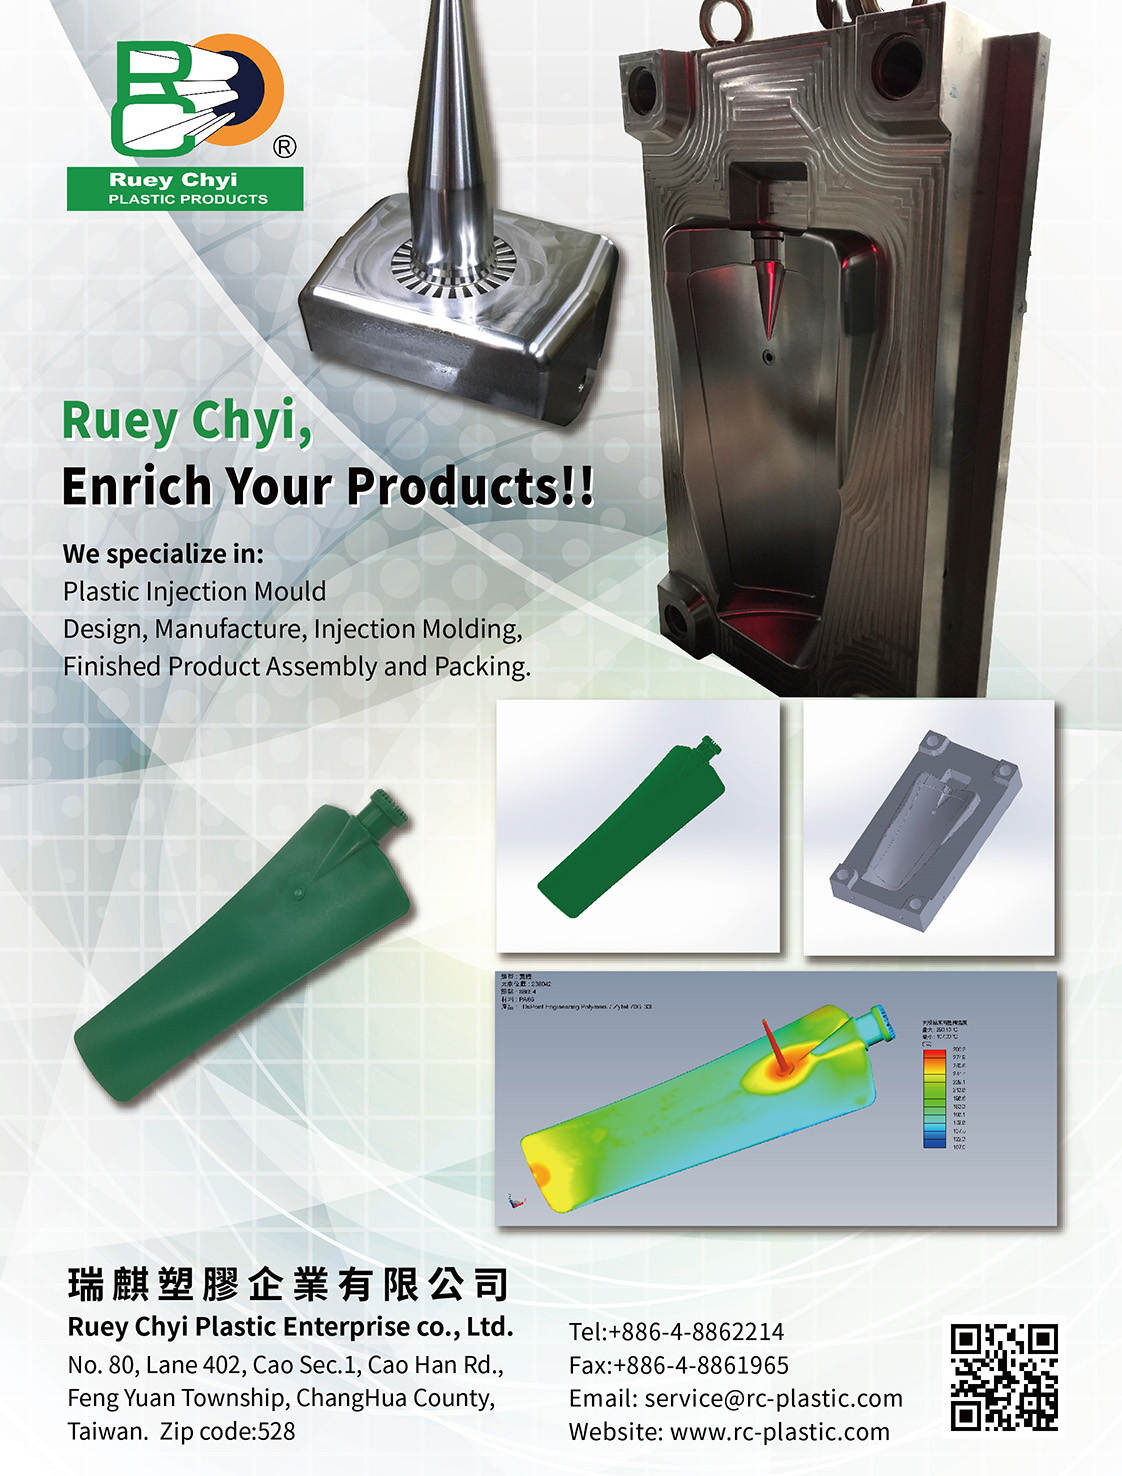 RICH PRECISION CO., LTD.